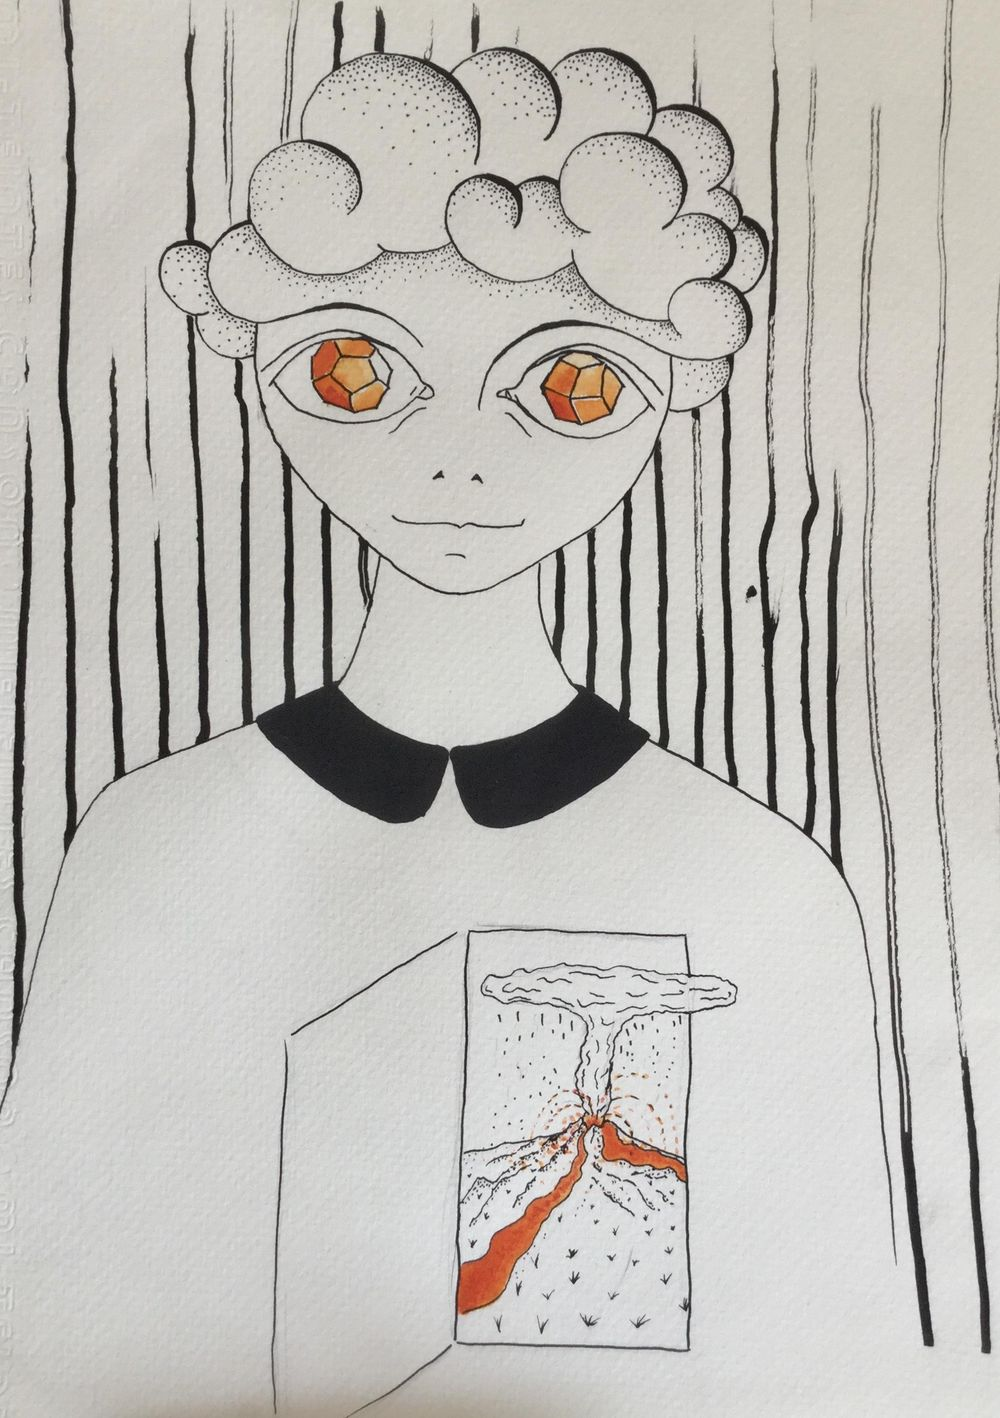 Inner warmth - image 2 - student project